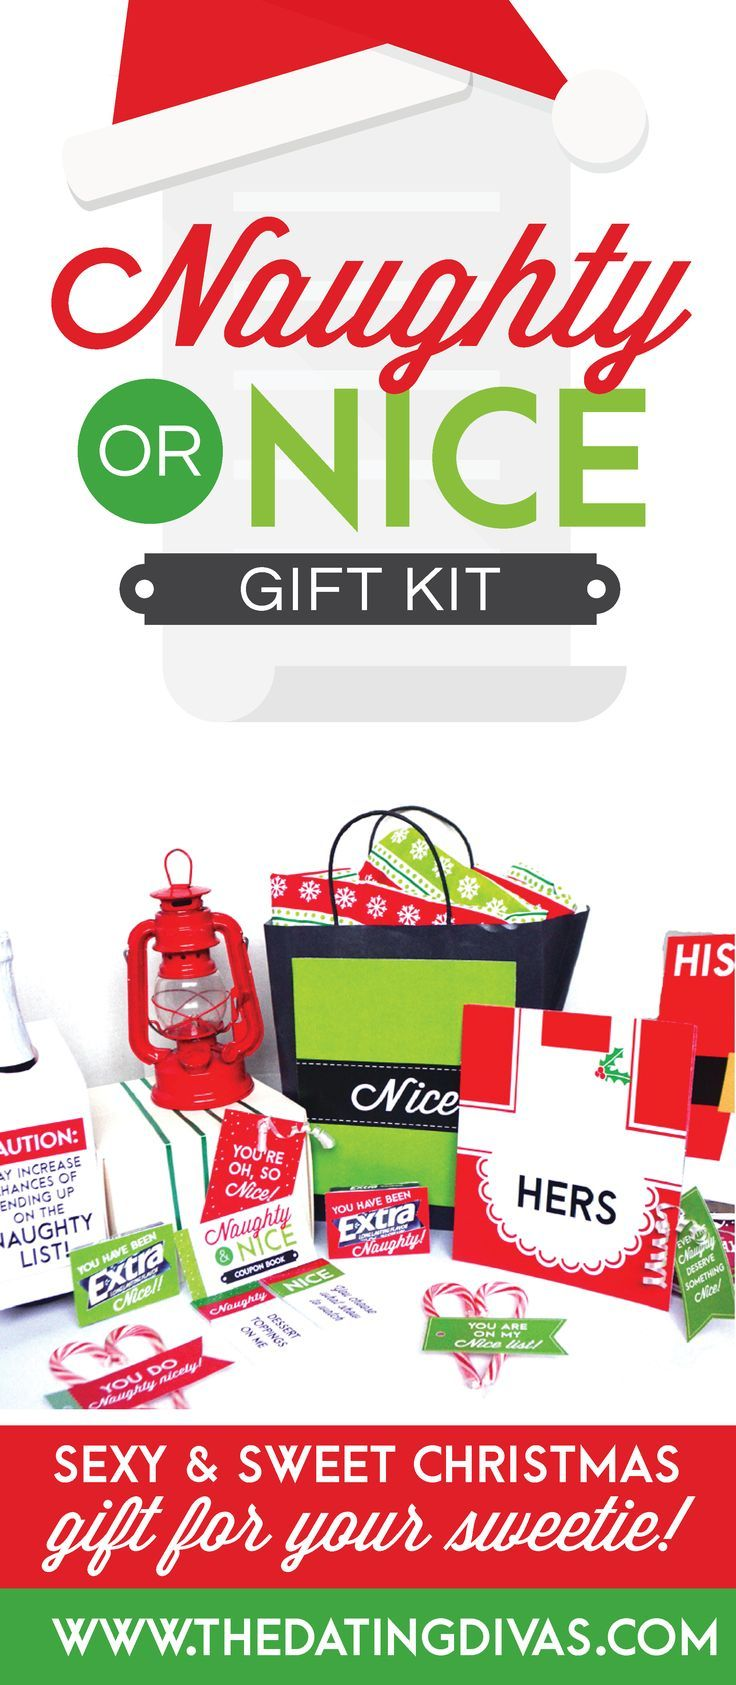 Christmas Husband And Wife Gifts From Christmas Gifts For Wife